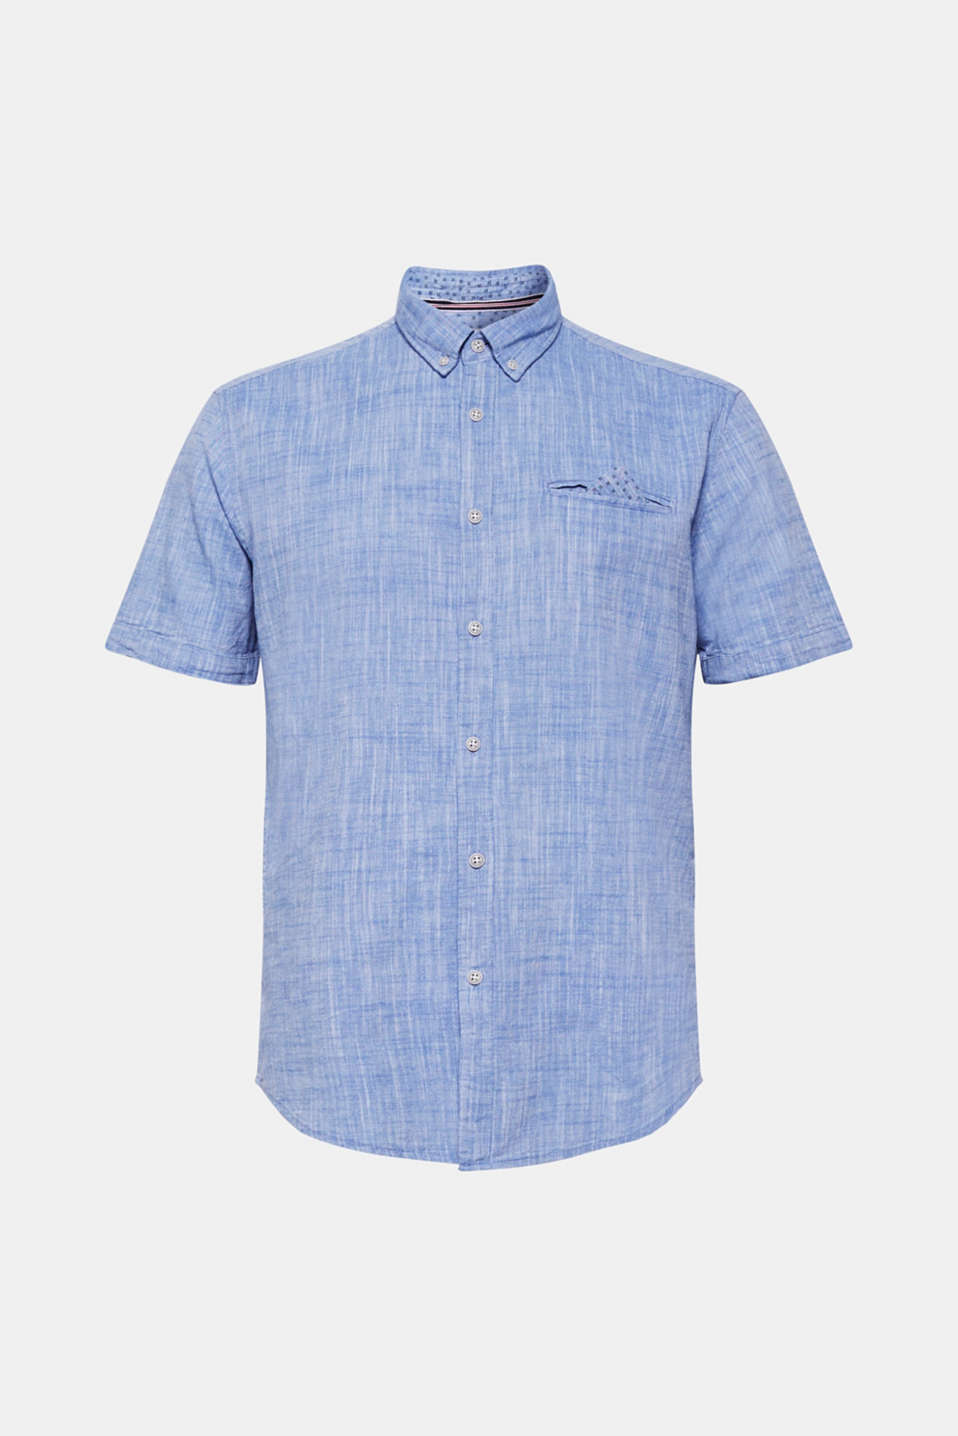 Shirts woven Regular fit, LIGHT BLUE, detail image number 6